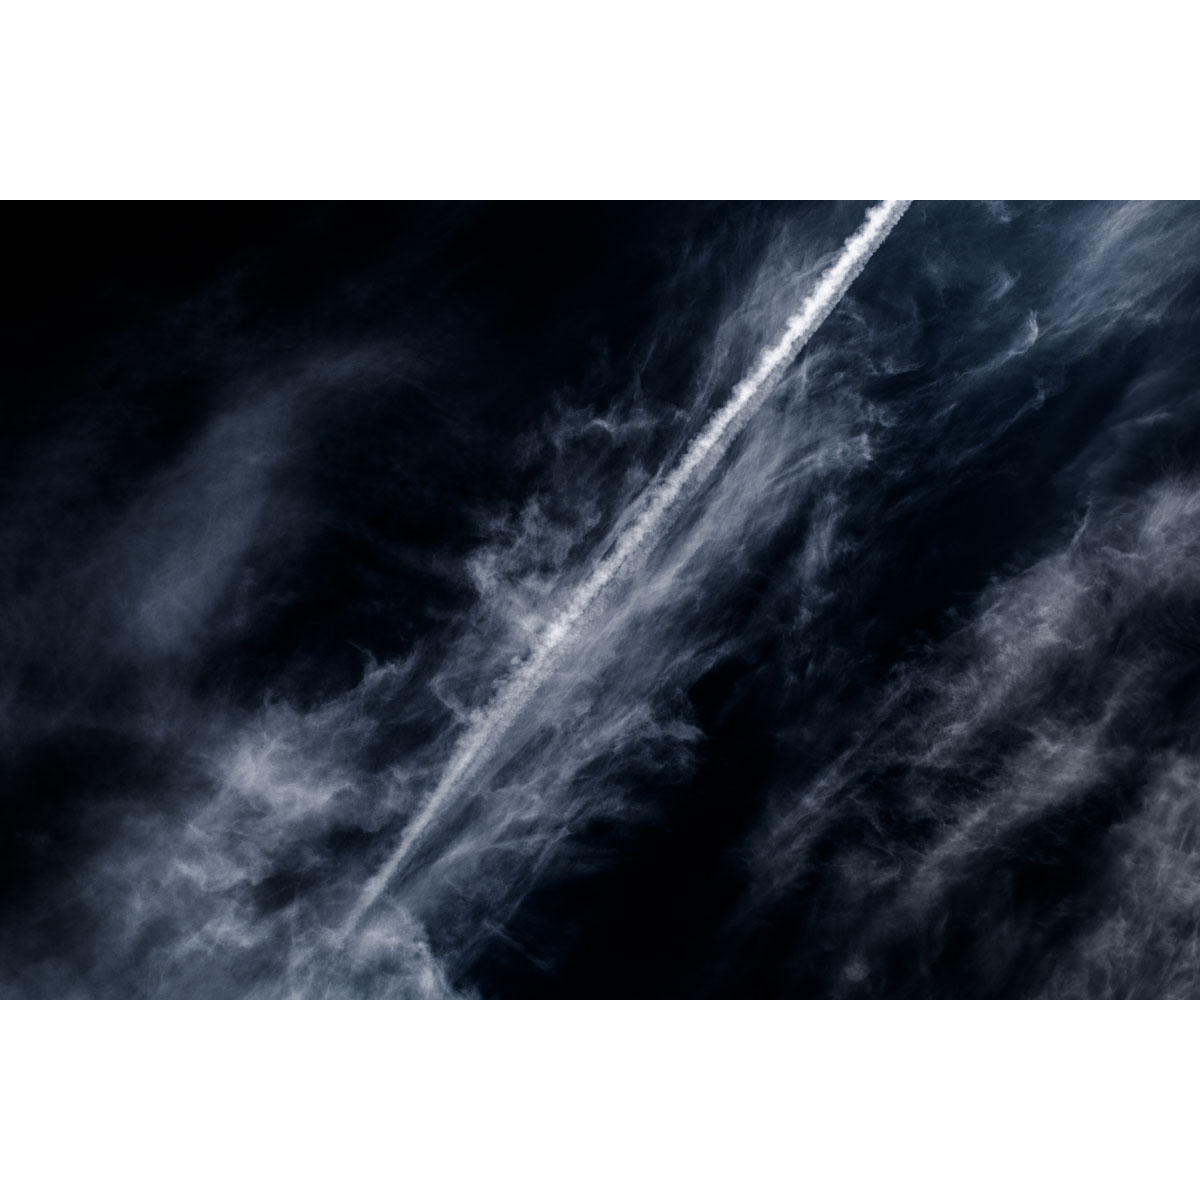 Cutting through the dross - an airliner's vapour trail comes to rest, before merging with clouds above Newtownabbey, Northern Ireland, by Stephen S T Bradley